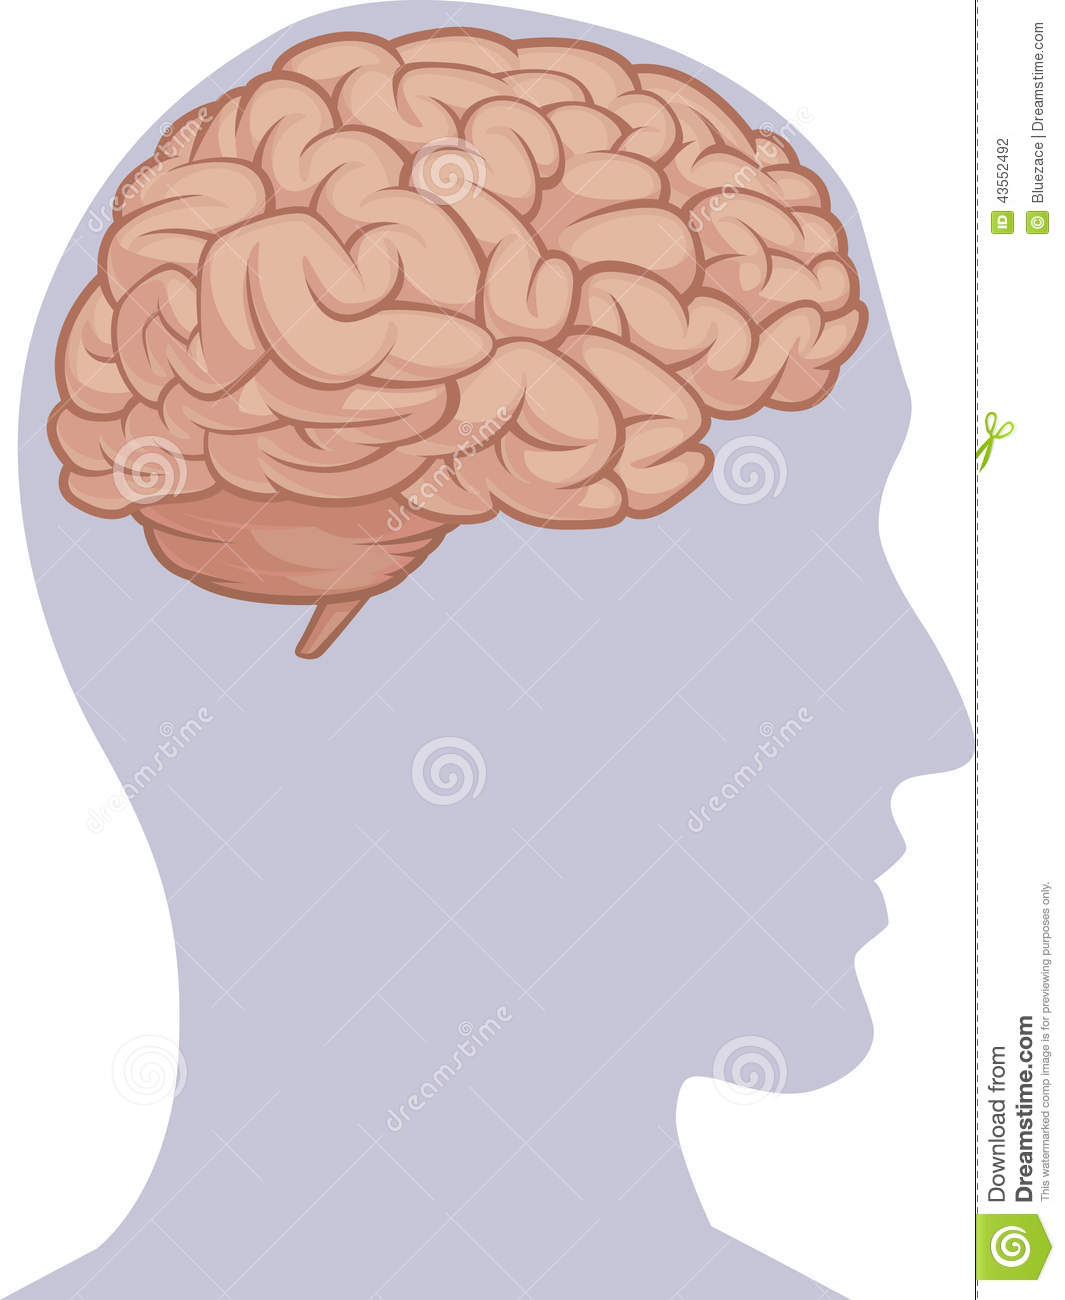 Human Body Part Brain Inside Head Silhouette Stock Vector